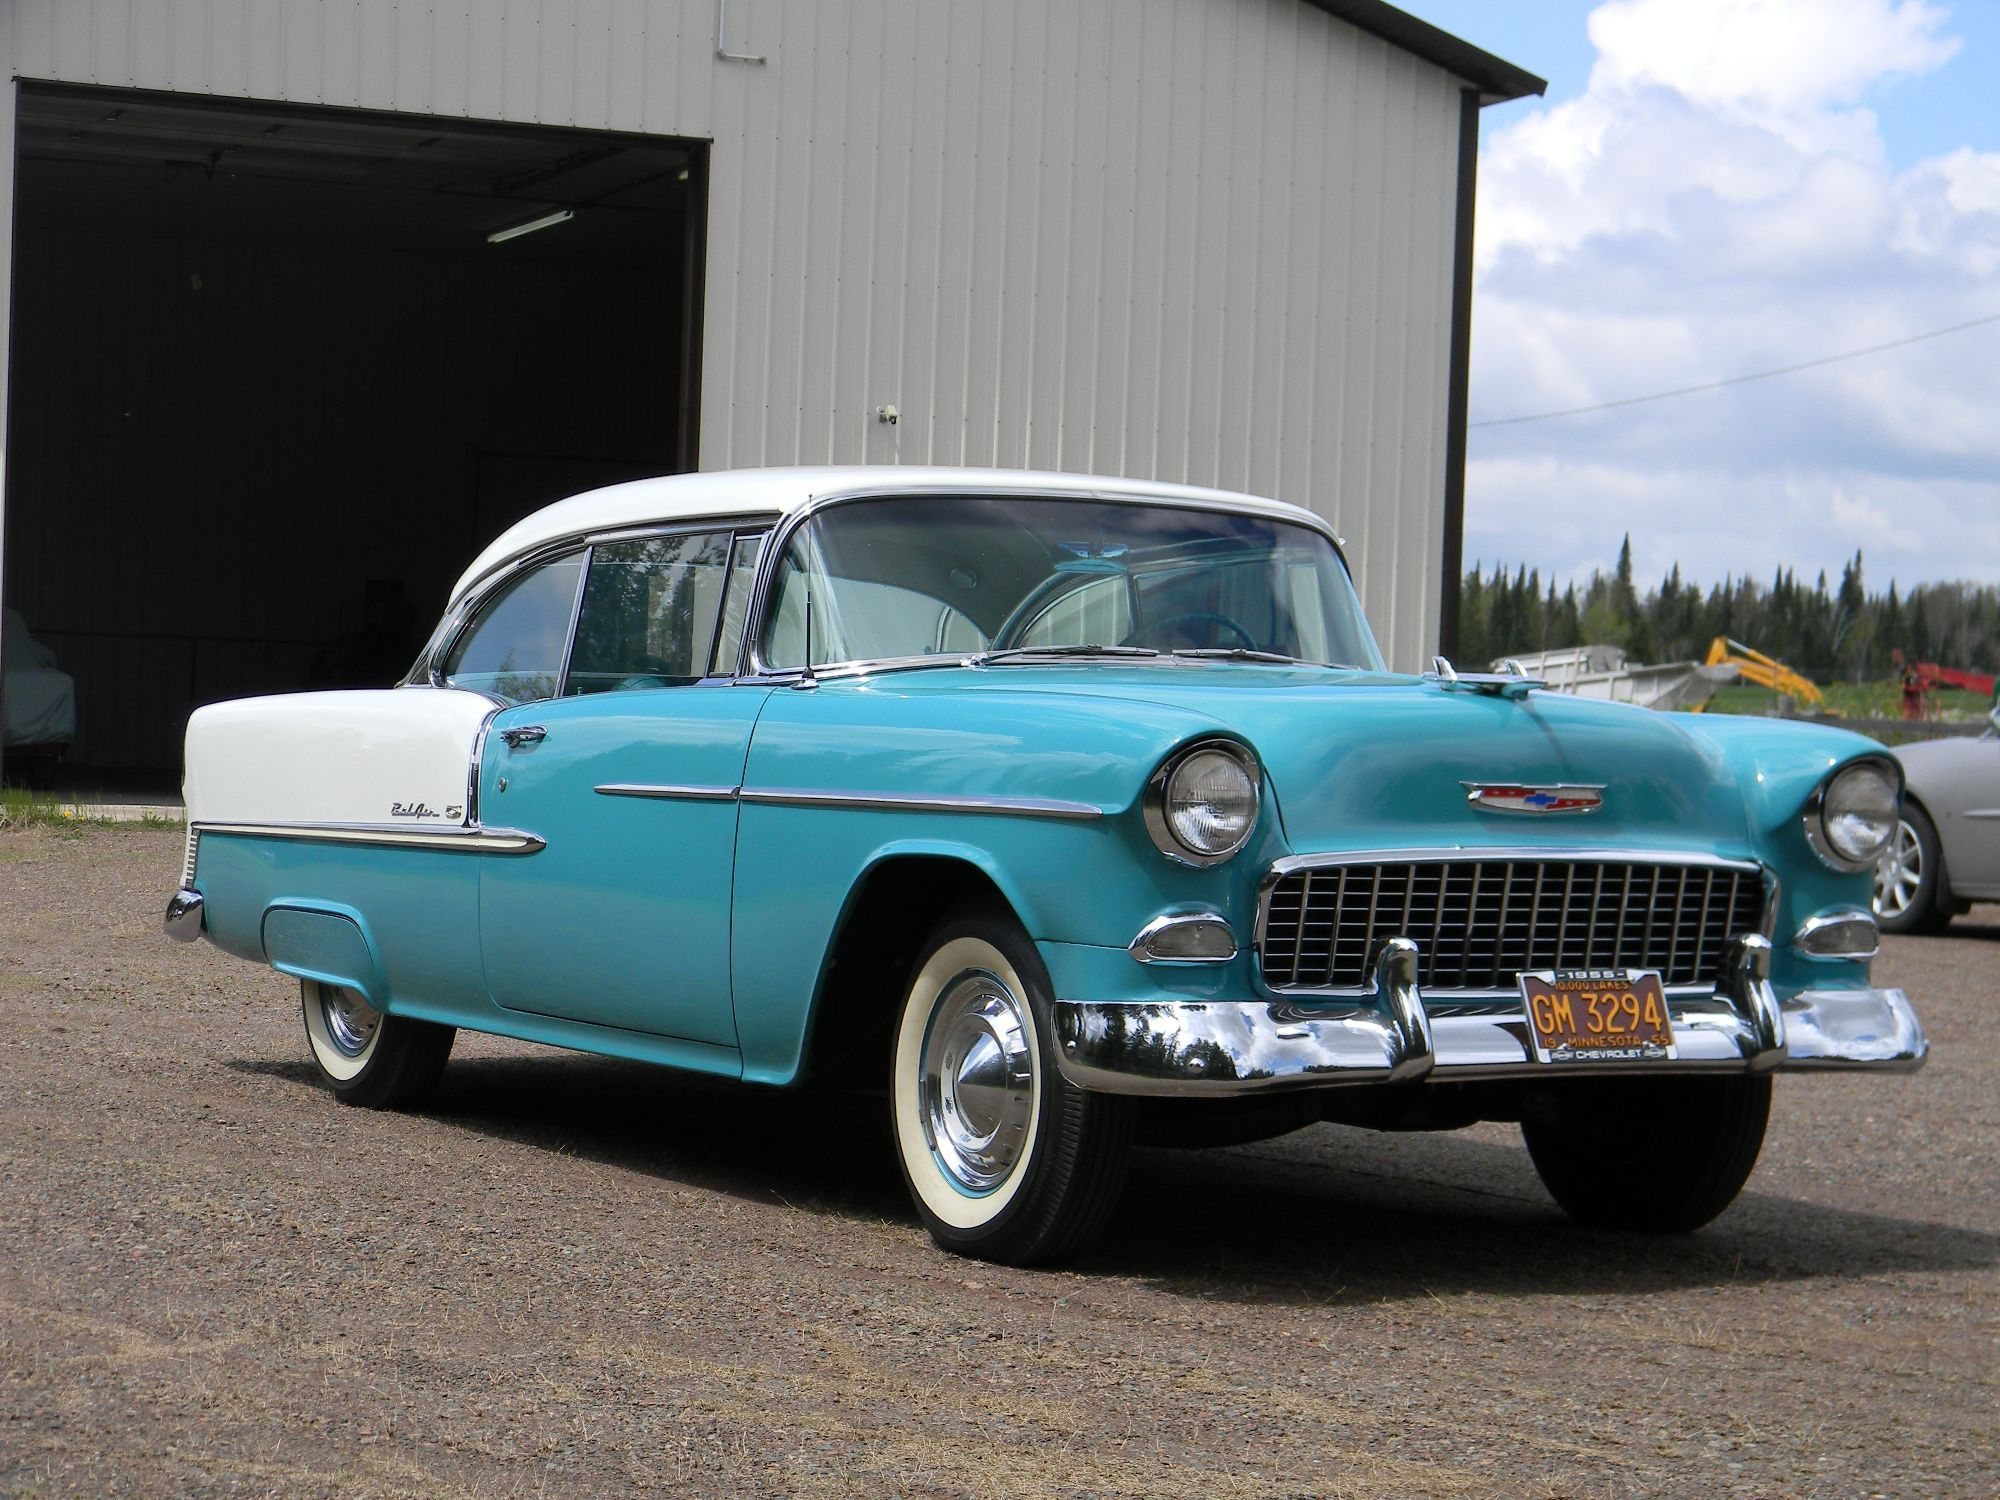 57' Chevrolet Bel Air 55' And 56